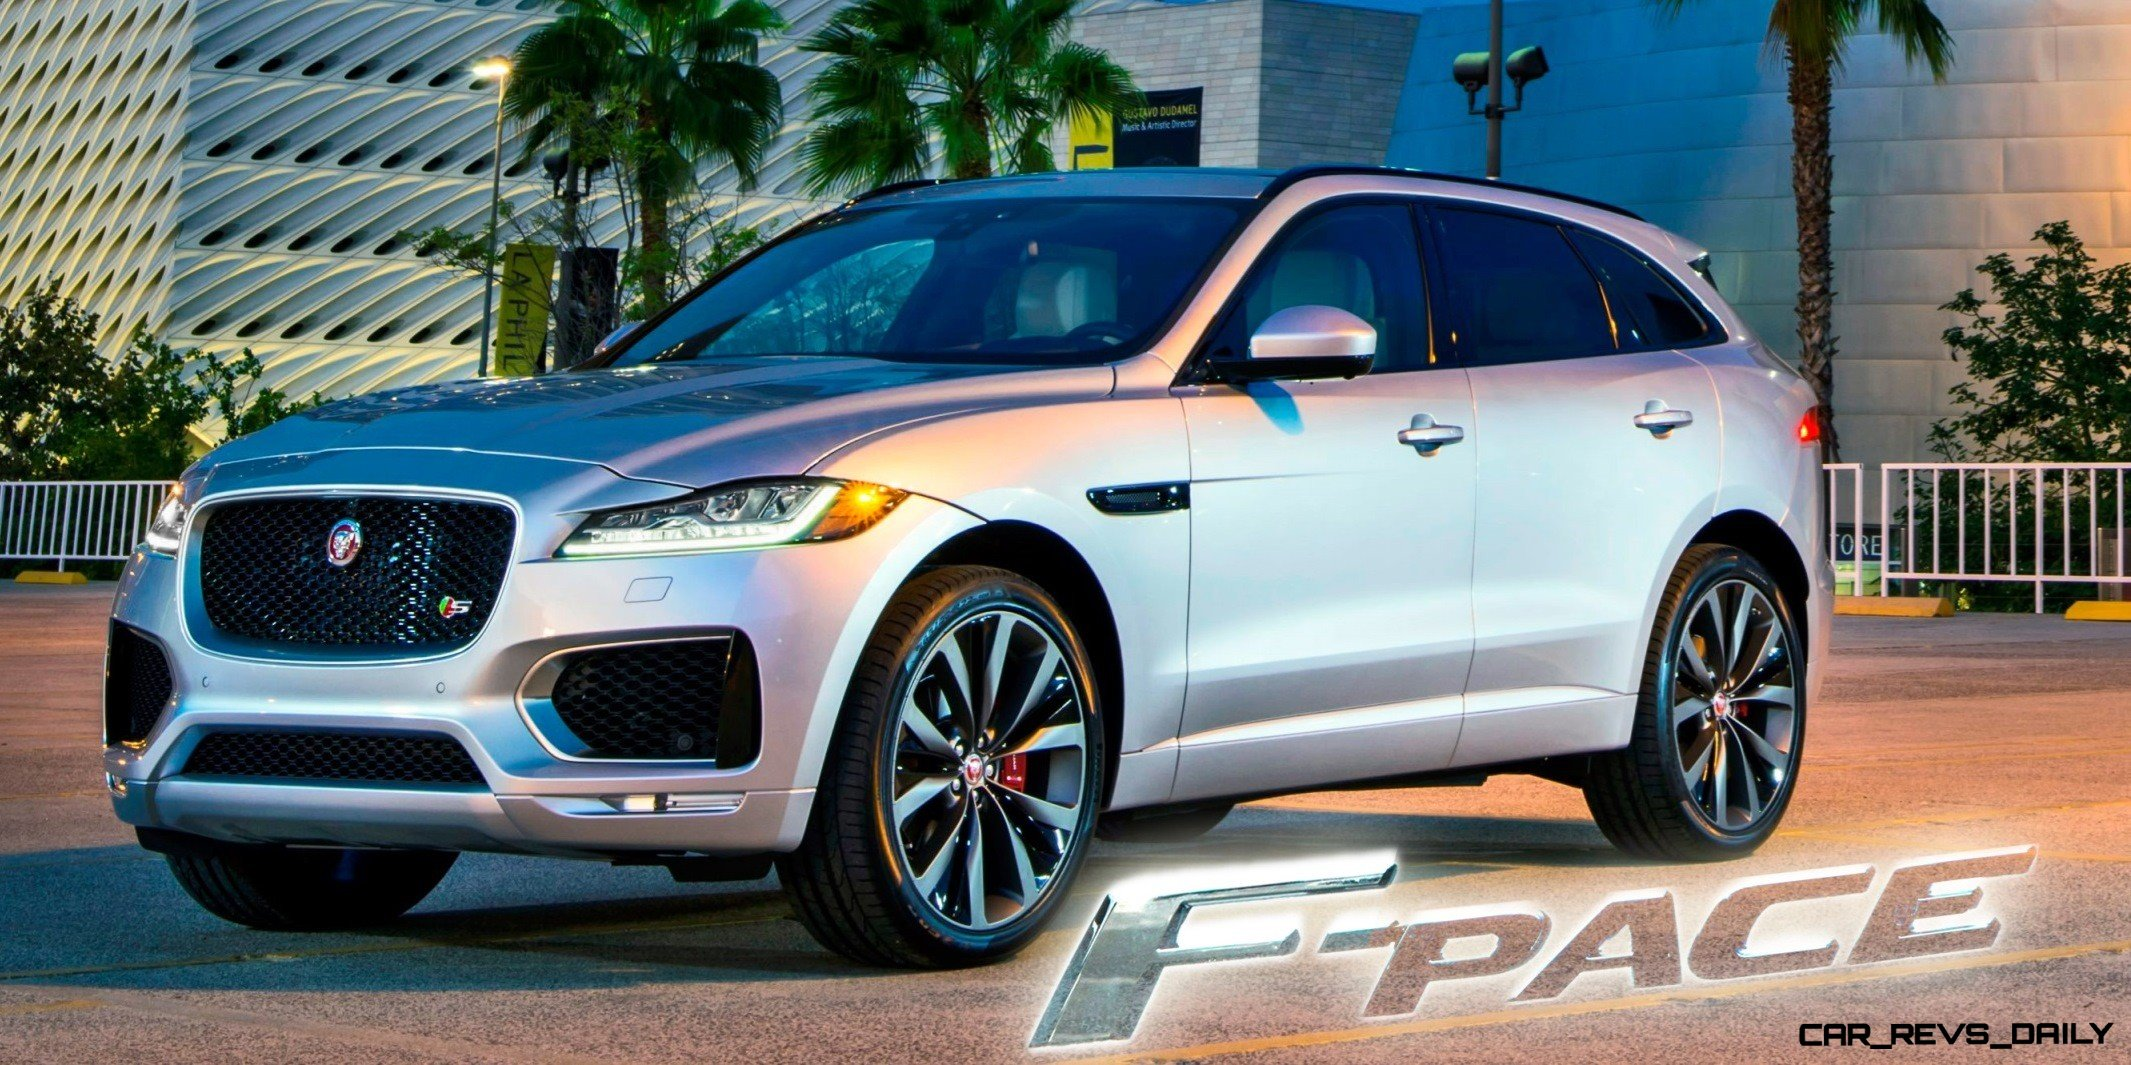 5 1s 2017 Jaguar F Pace Suv Usa Photos Colors Wheels Visualizer And Pricing From 42k Car Revs Daily Com